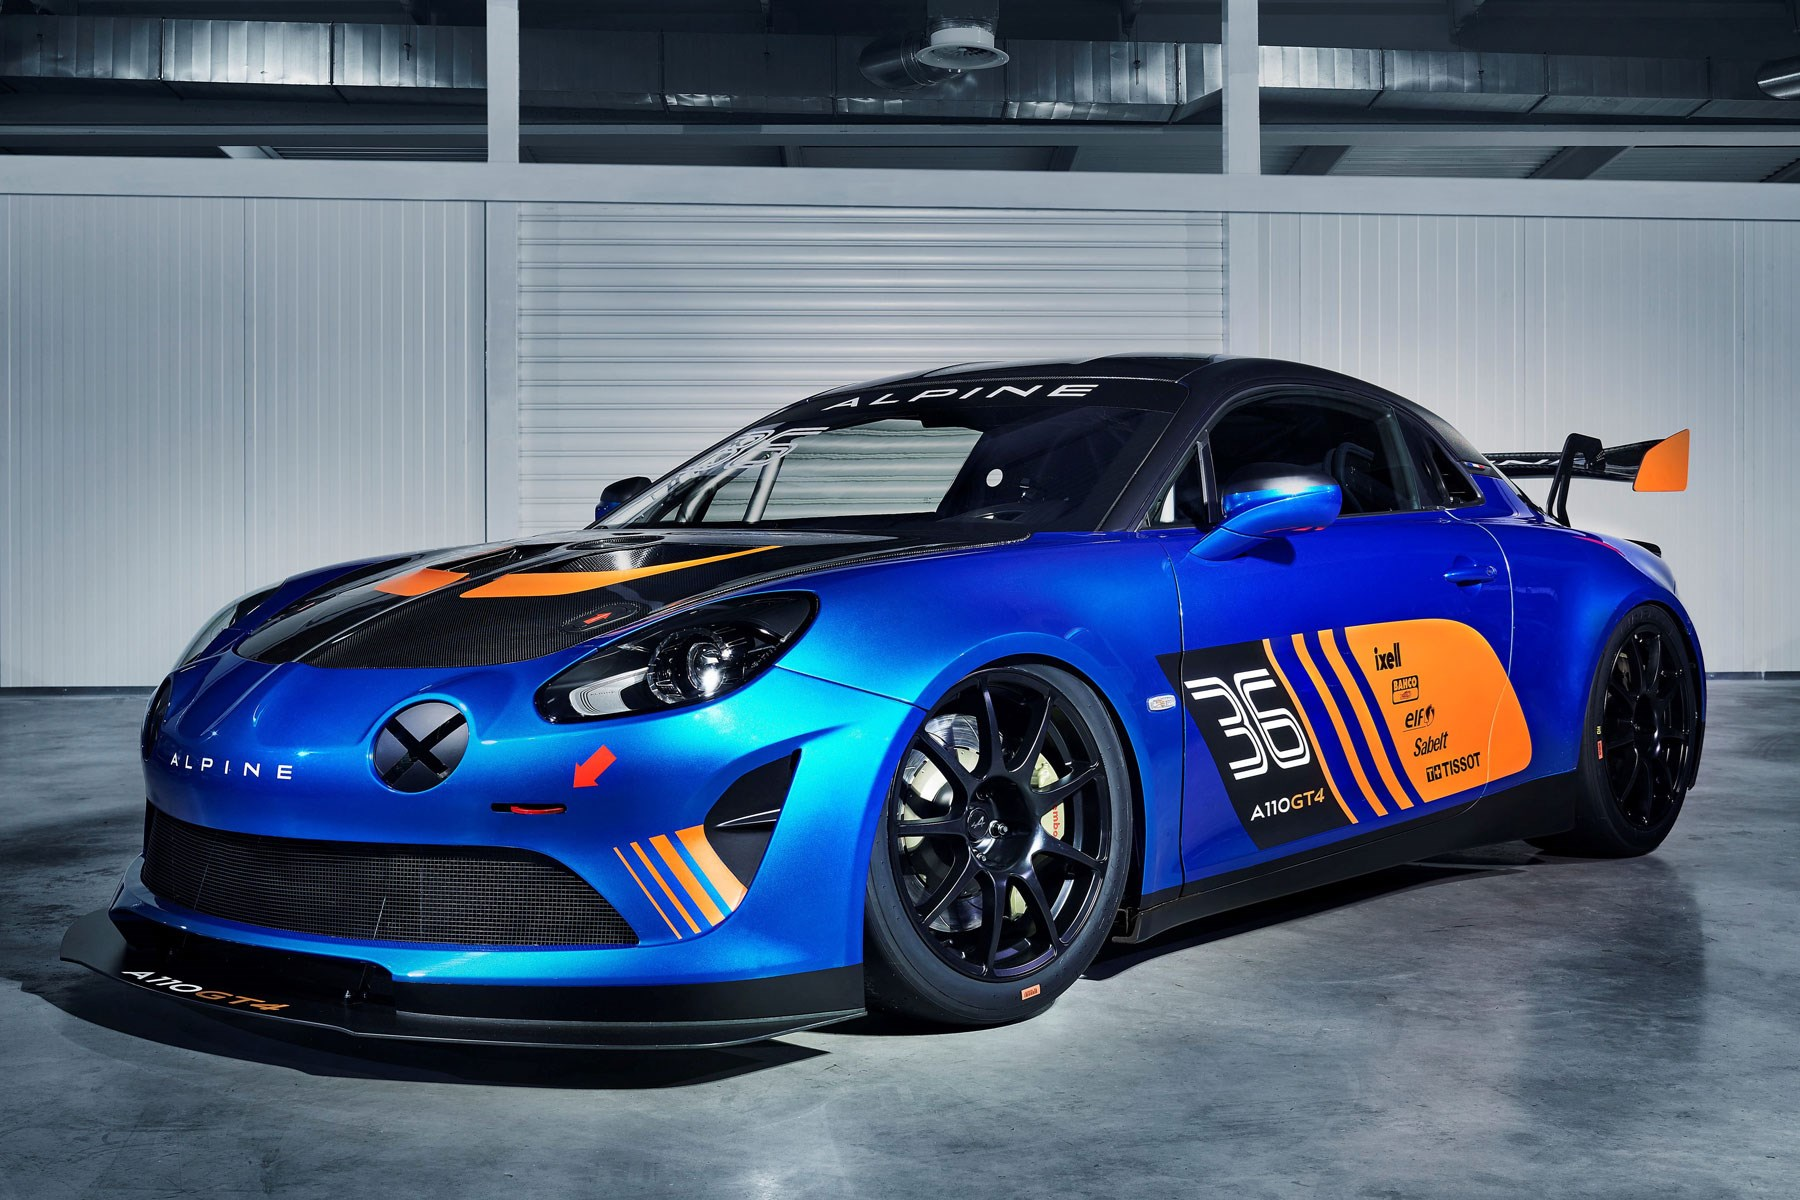 Mini Supercars For Sale >> Alpine A110 sports car: everything you need to know | CAR Magazine